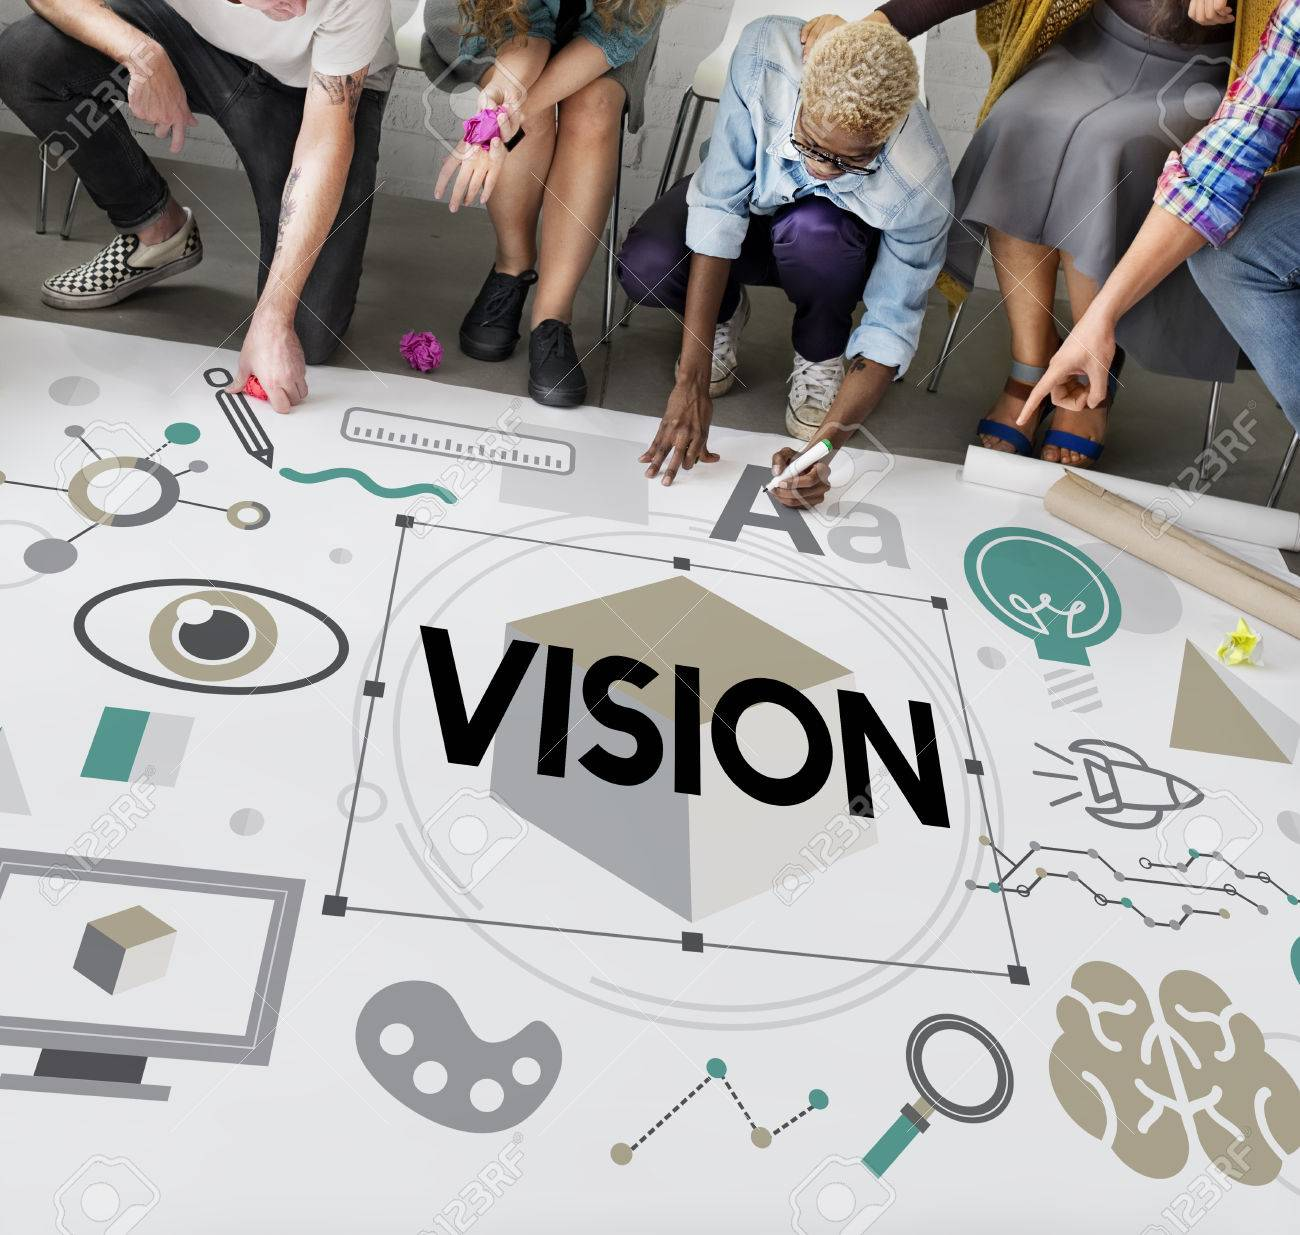 vision goals aspirations planning word concept stock photo stock photo vision goals aspirations planning word concept